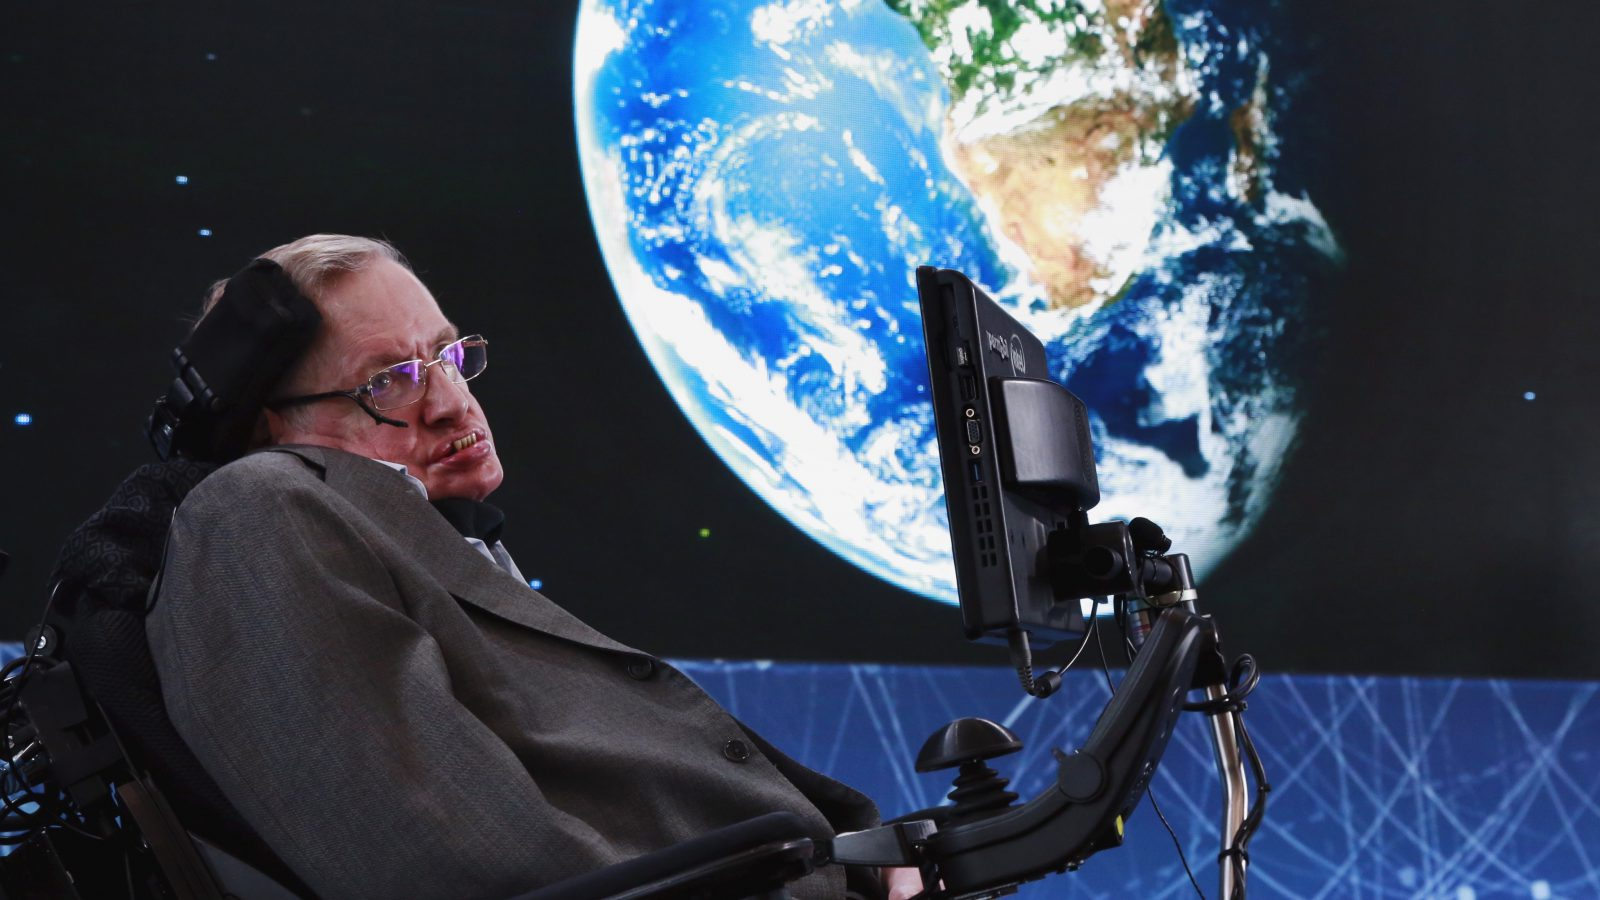 Physicist Stephen Hawking sits on stage during an announcement of the Breakthrough Starshot initiative with investor Yuri Milner in New York April 12, 2016. REUTERS/Lucas Jackson      TPX IMAGES OF THE DAY      - RTX29N6M